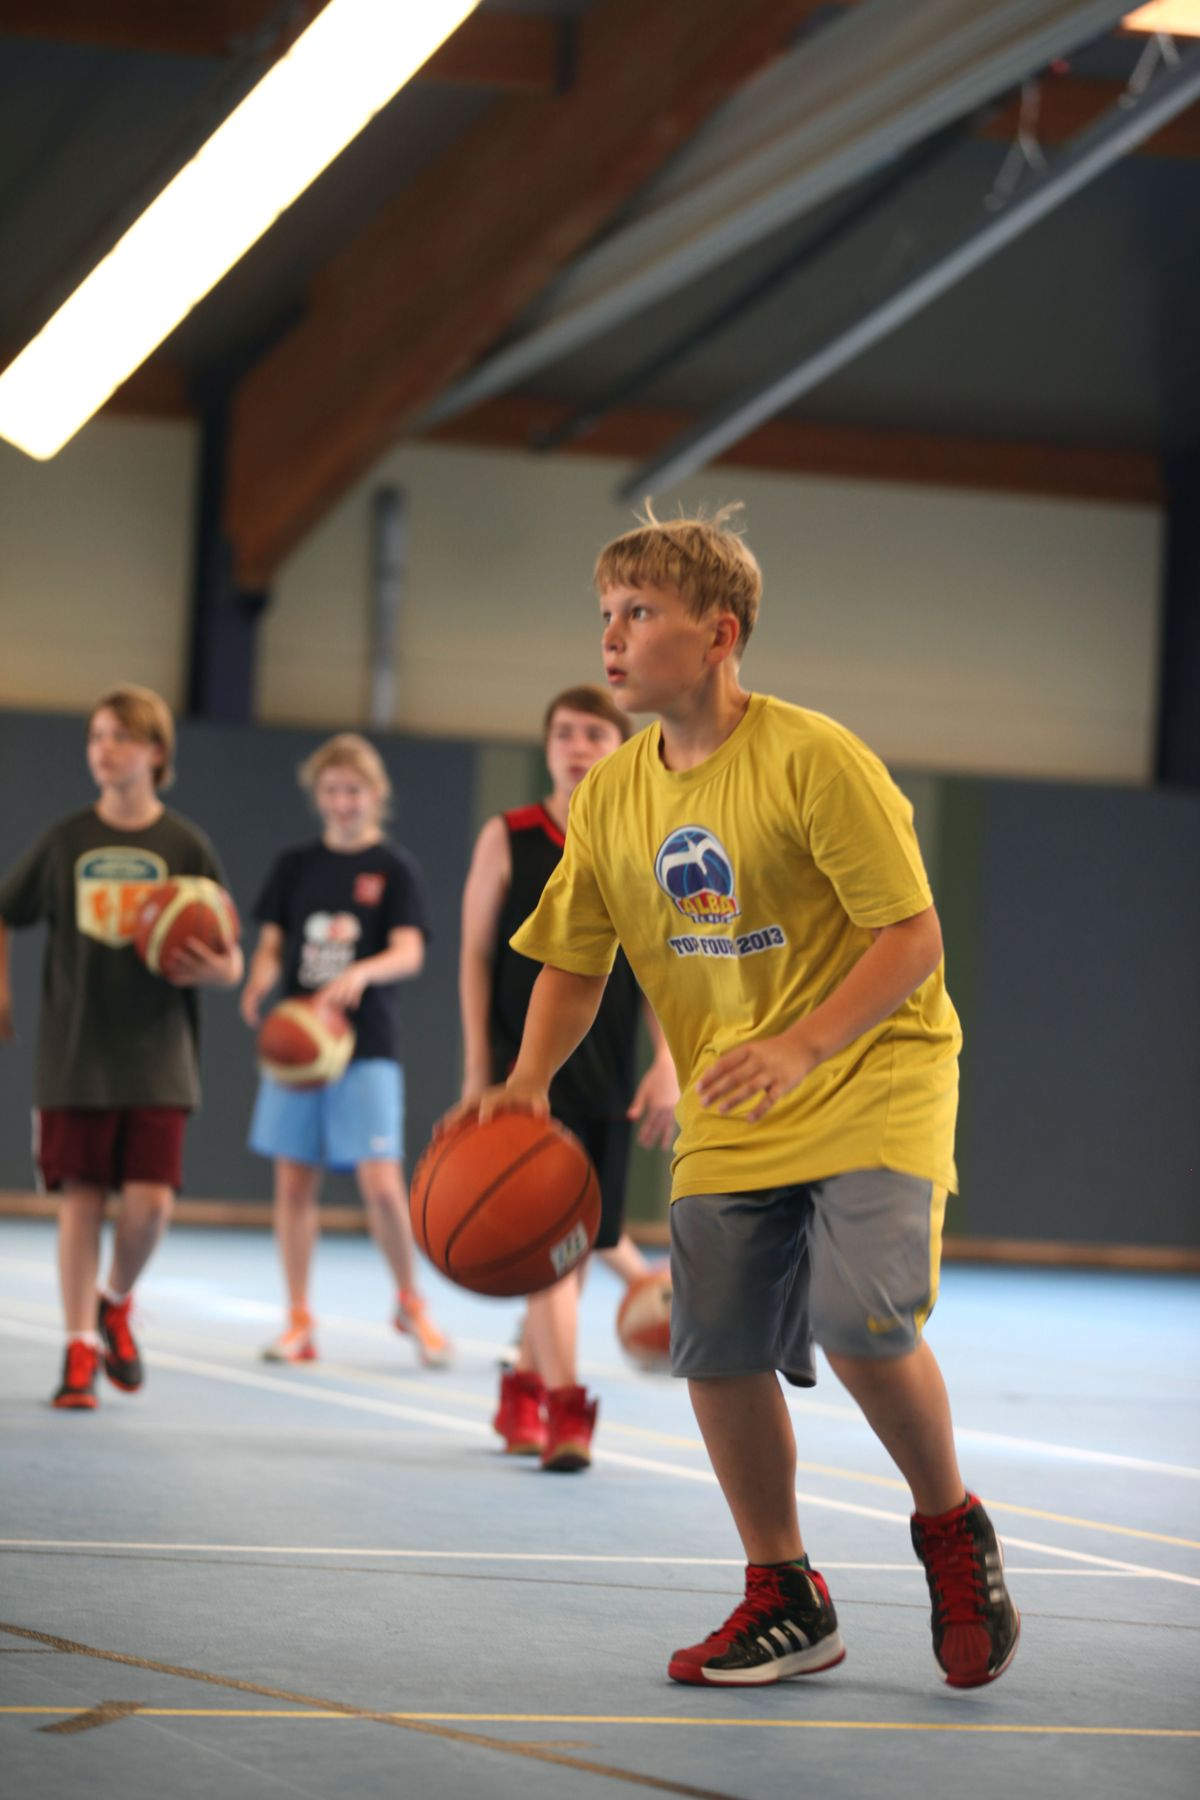 Sommer_BBall-Camp_2014_Tag 3 (23)